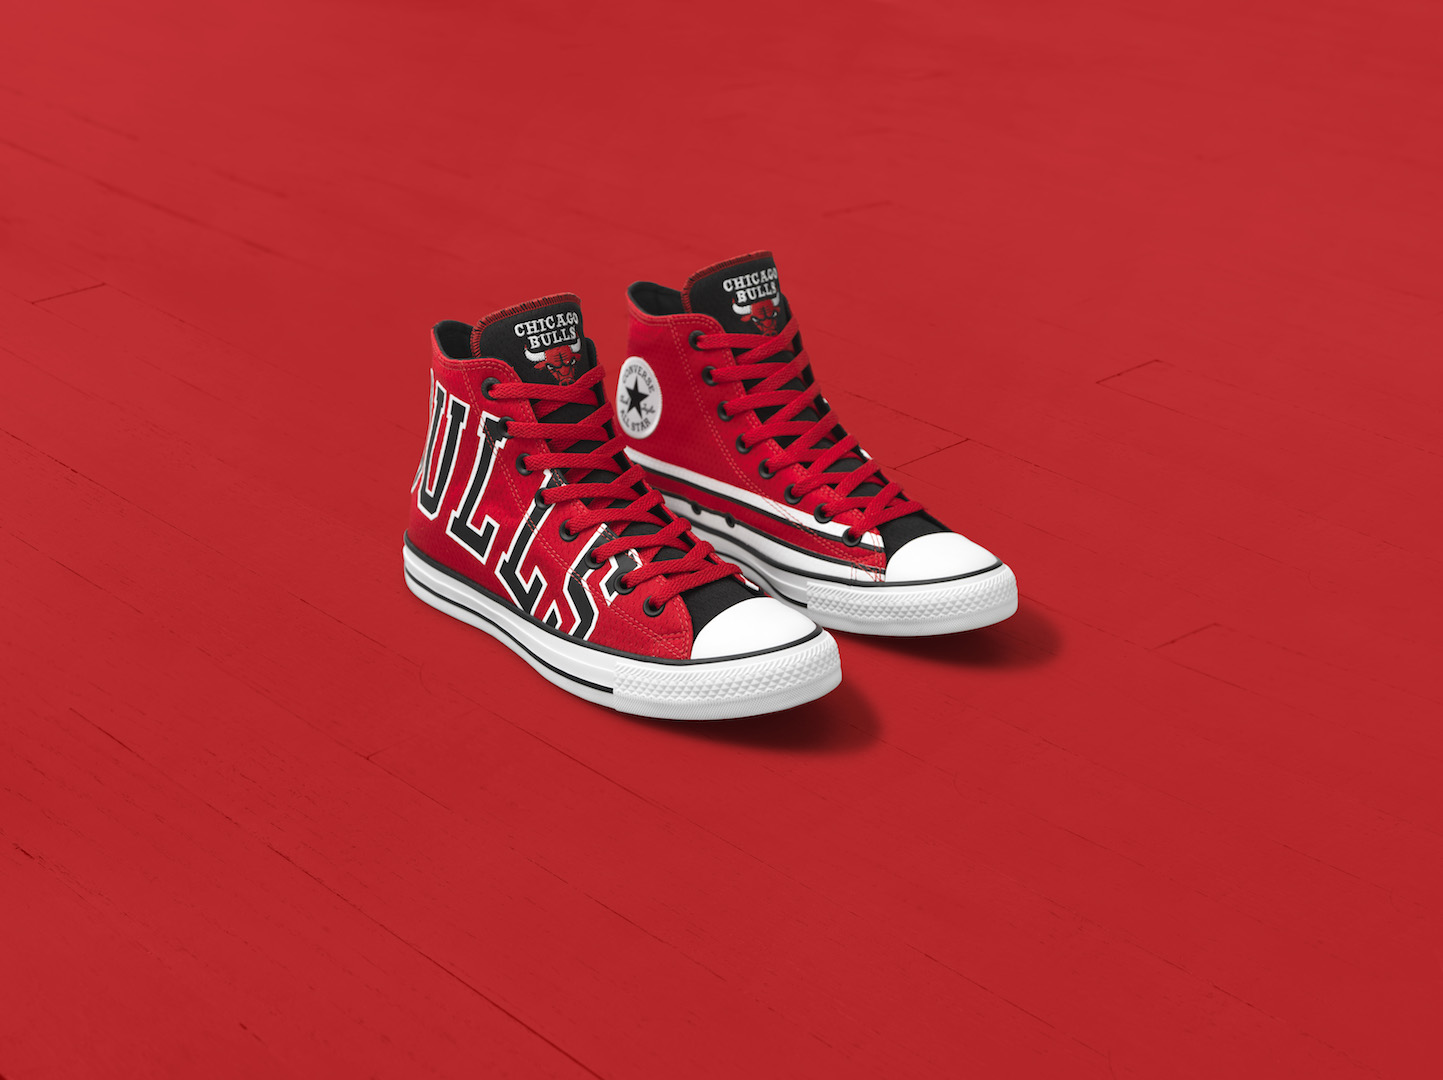 2318f7ace3aa Converse introduces NBA Chuck Taylor All Star Collection ...